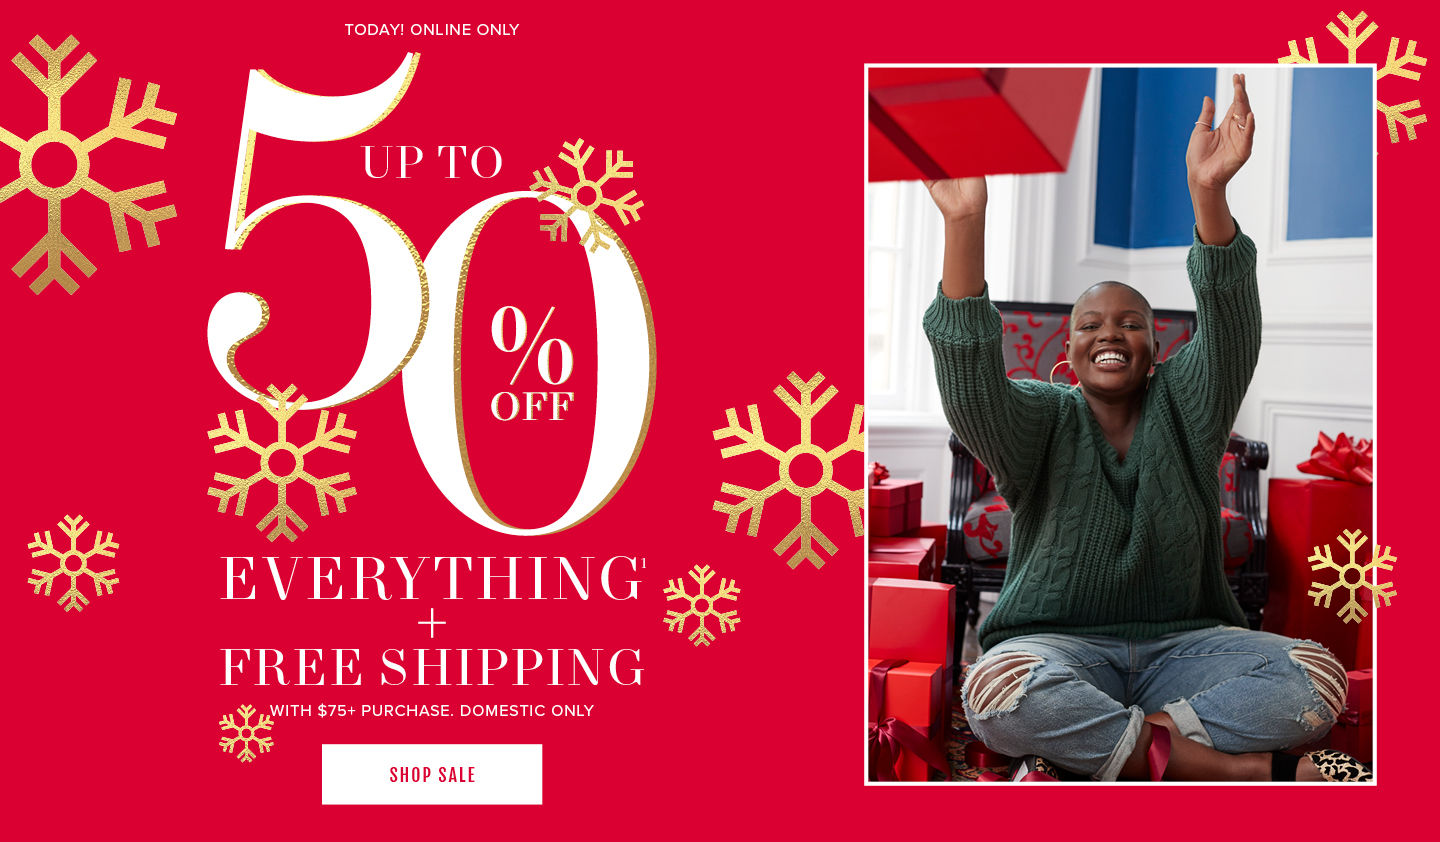 Today! Online Only Up To 50% Everything + Free Shipping With $75+ Purchase. Domestic Only. Shop Sale